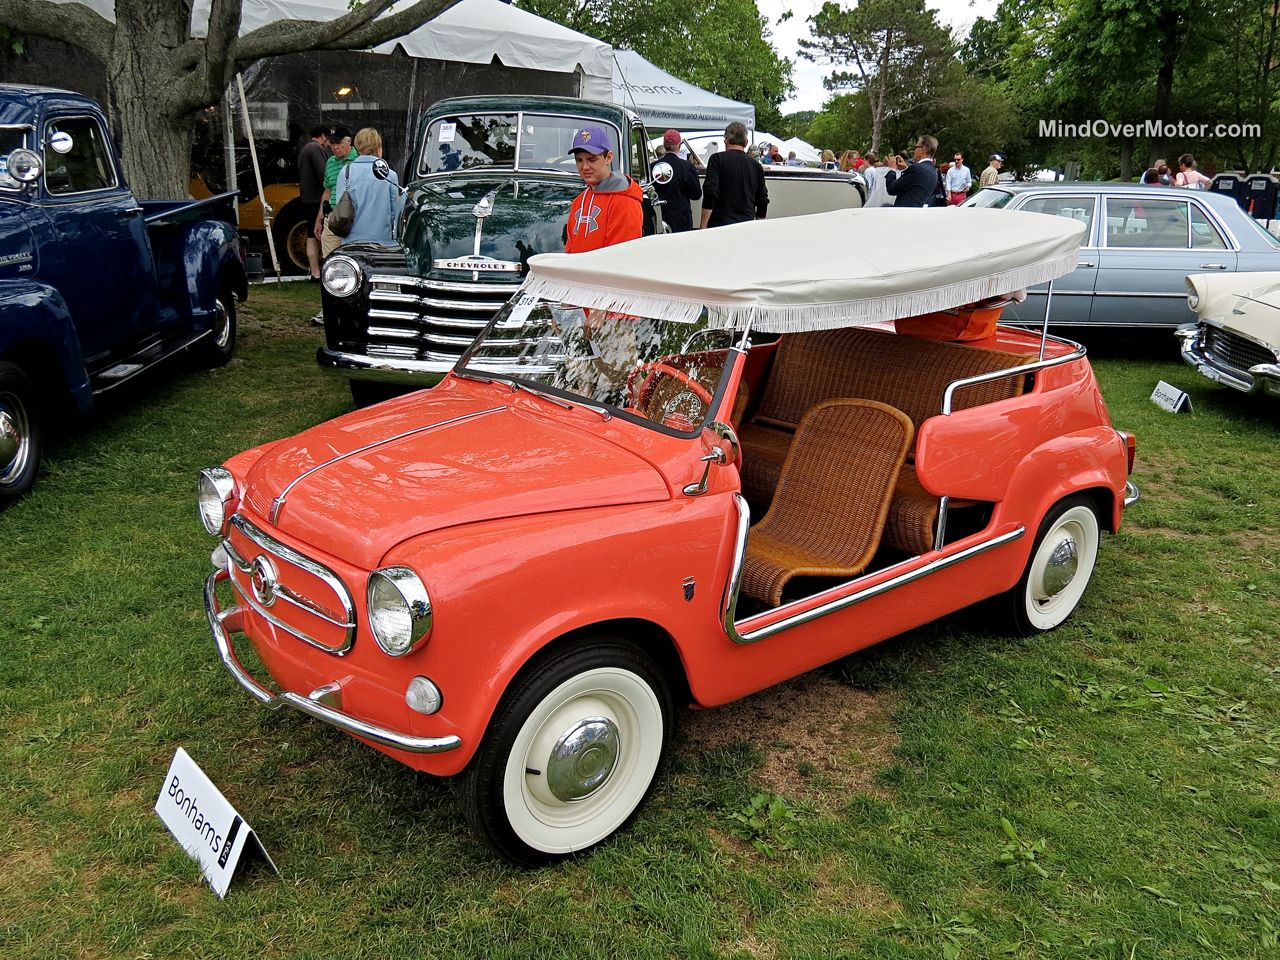 Fiat 600 Beach Car at the Greenwich Concours